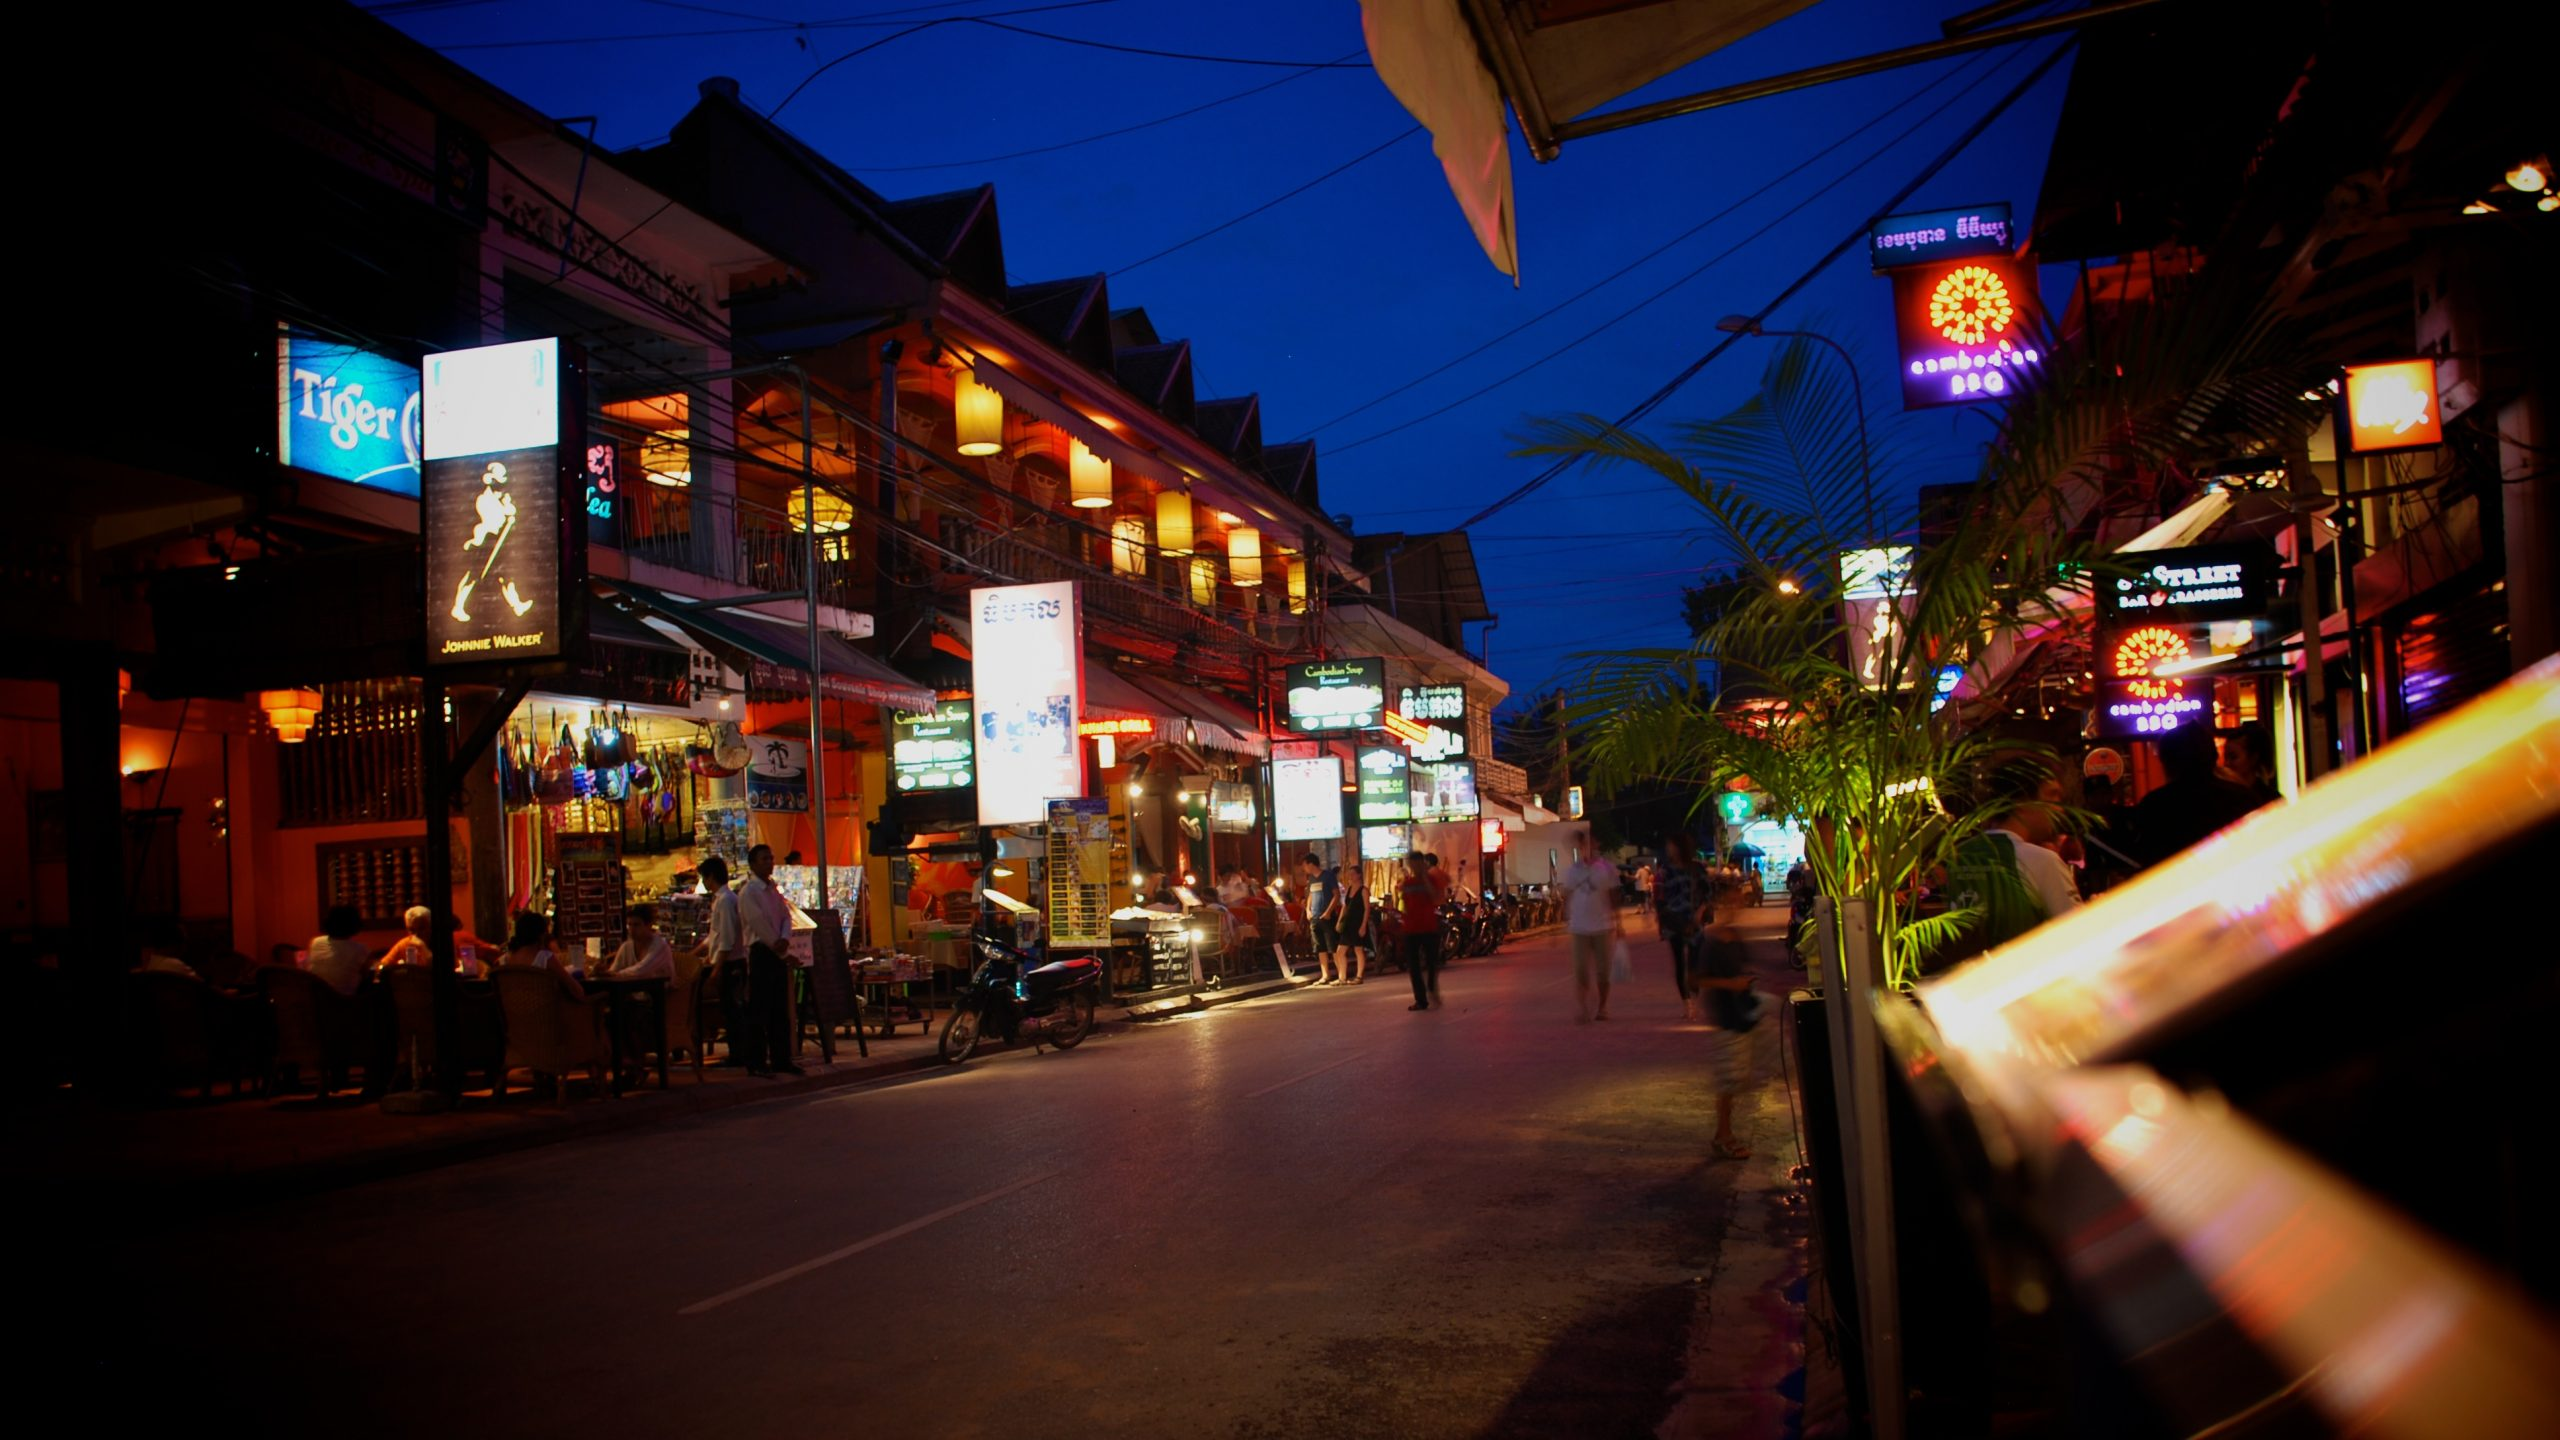 Cambodia Travel Guide-How Much Do I Have to Spend for An Overnight Stay in Cambodia?